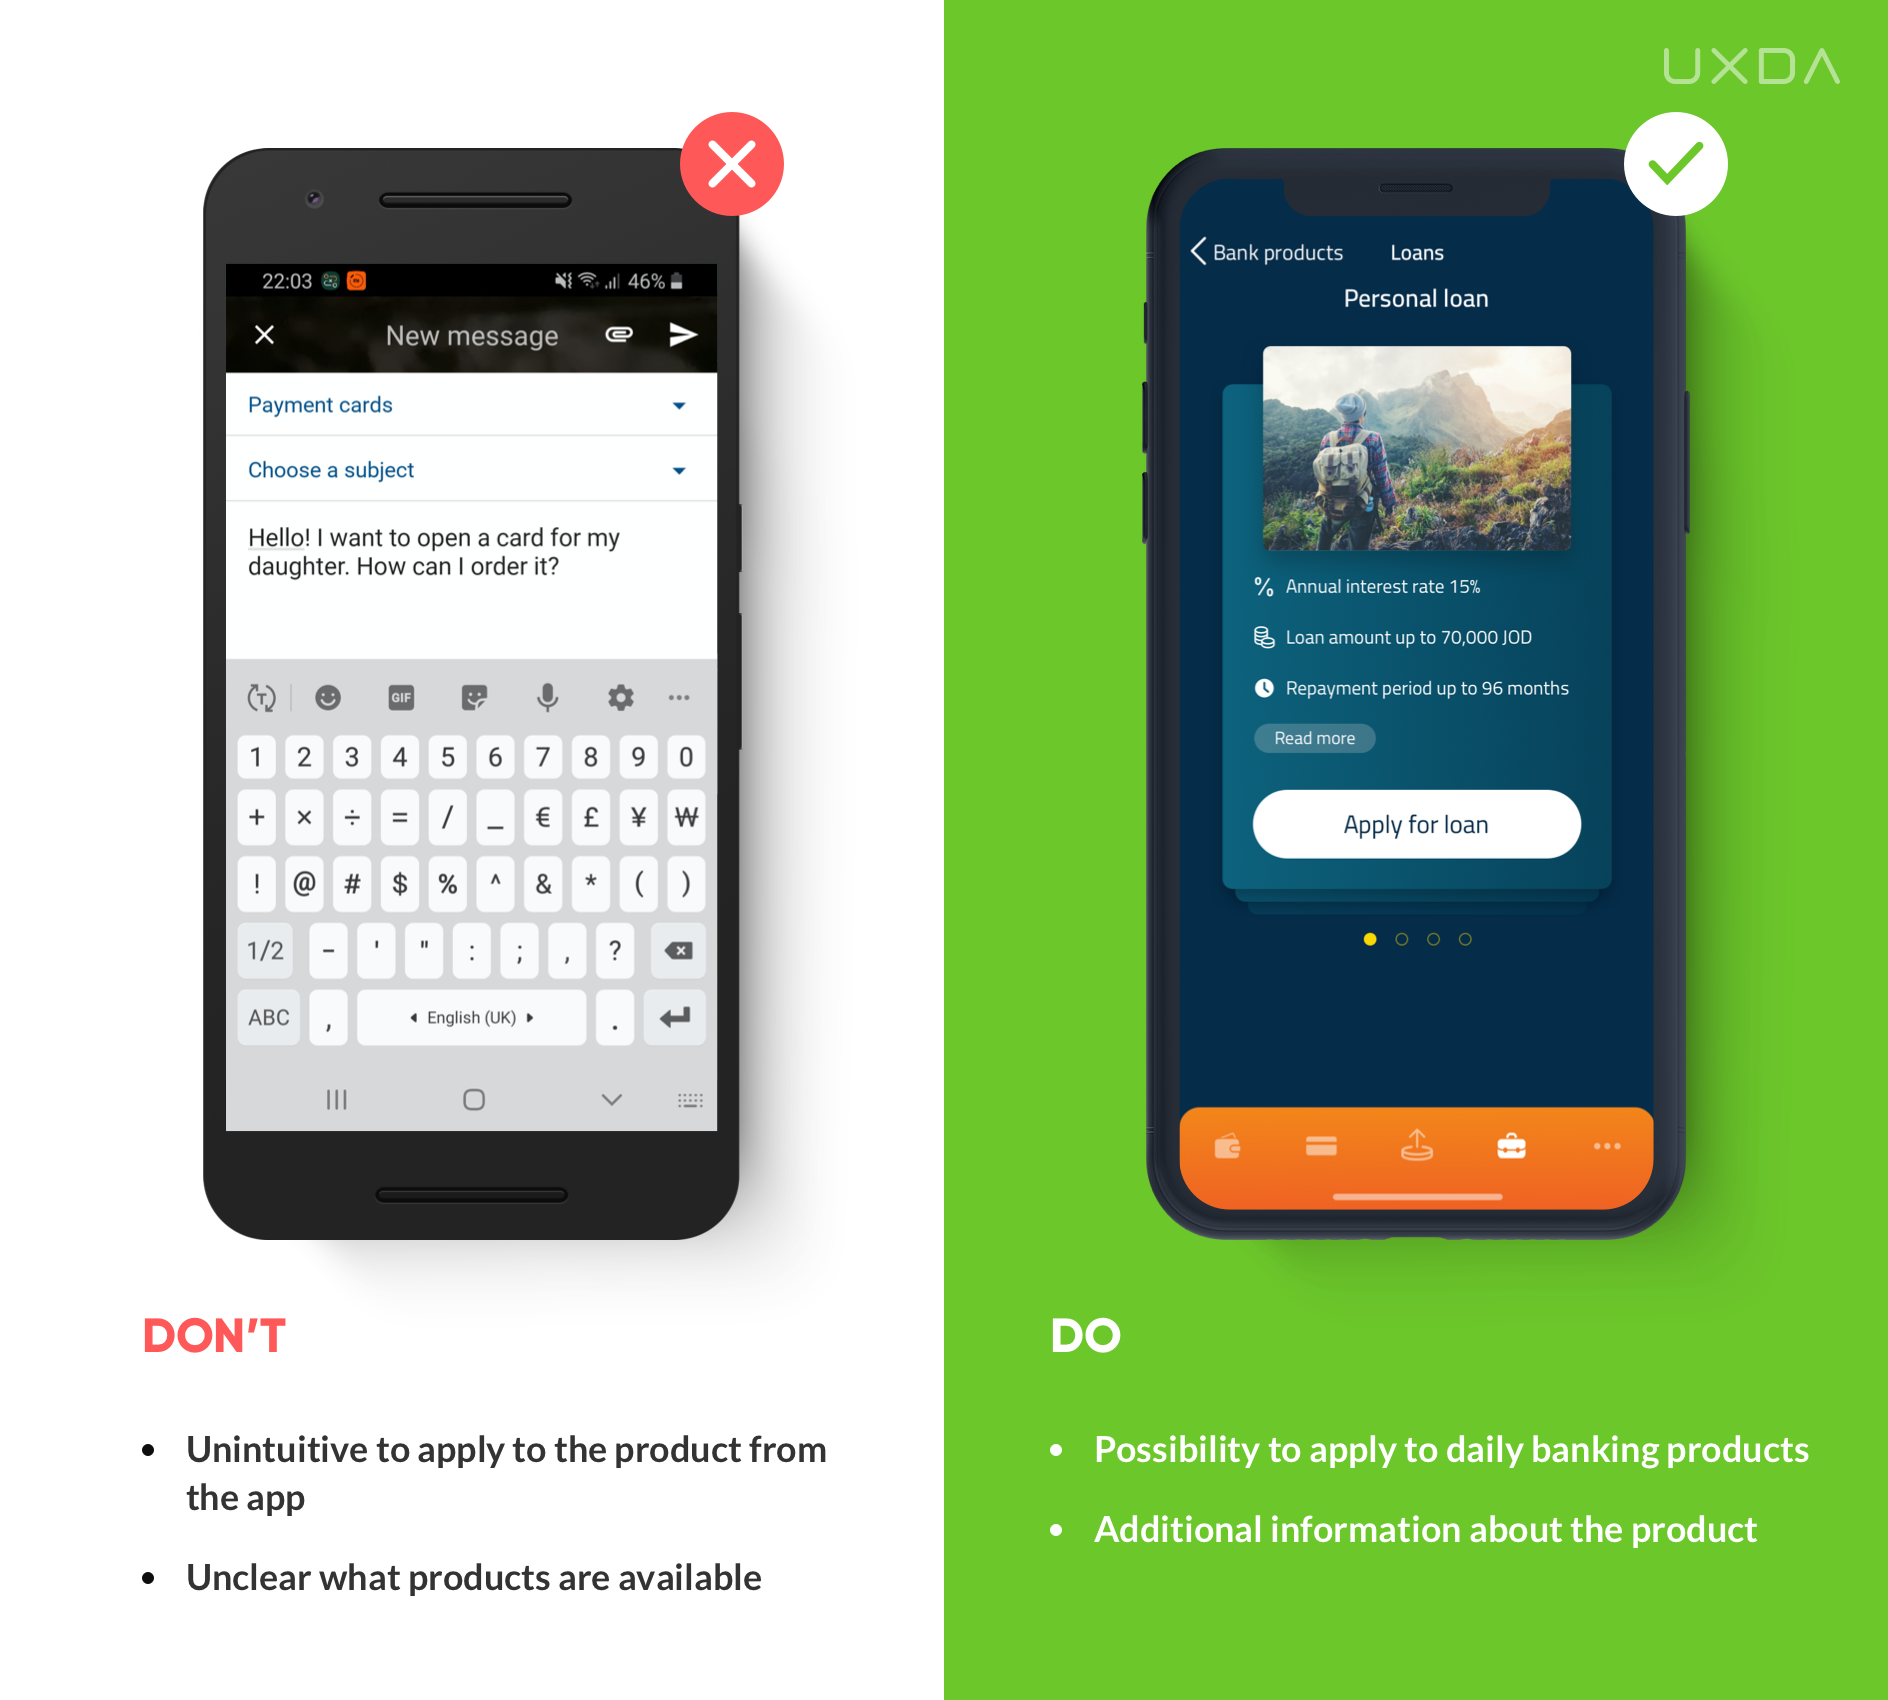 financial-ux-design-for-financial-app-products-5.png